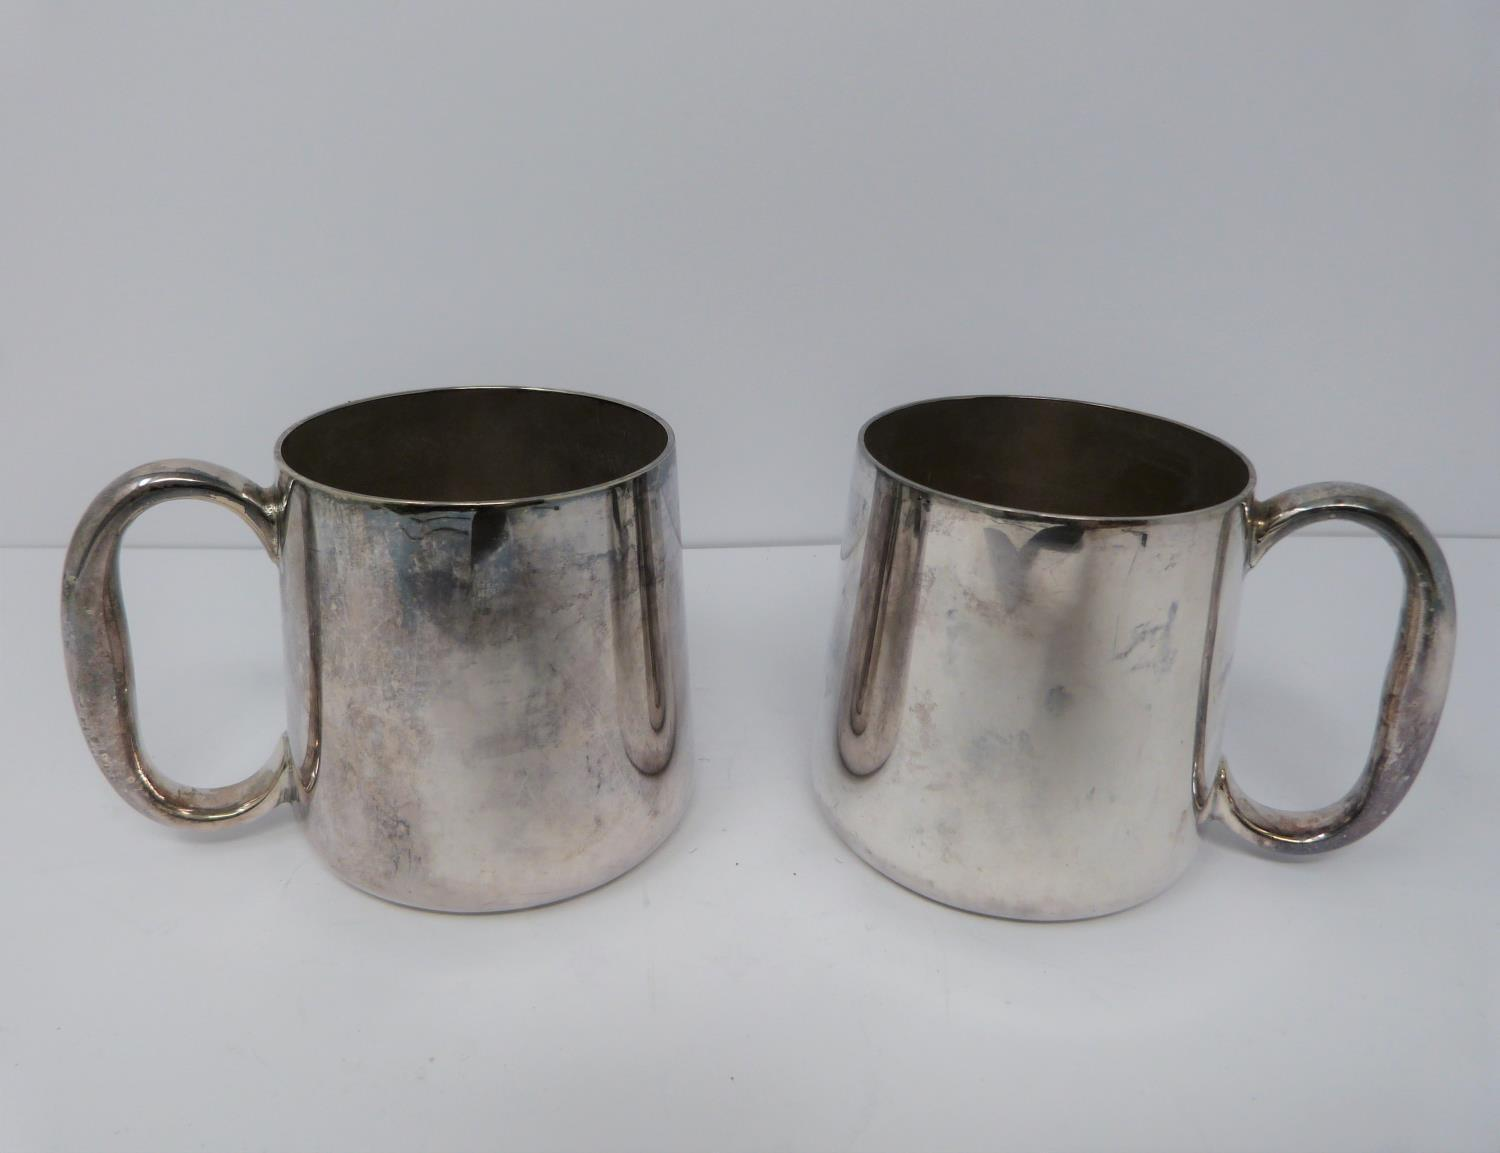 A silver plated cake stand, handled basket and two tankards, basket stamped EPNS, 13694, flower form - Image 11 of 12